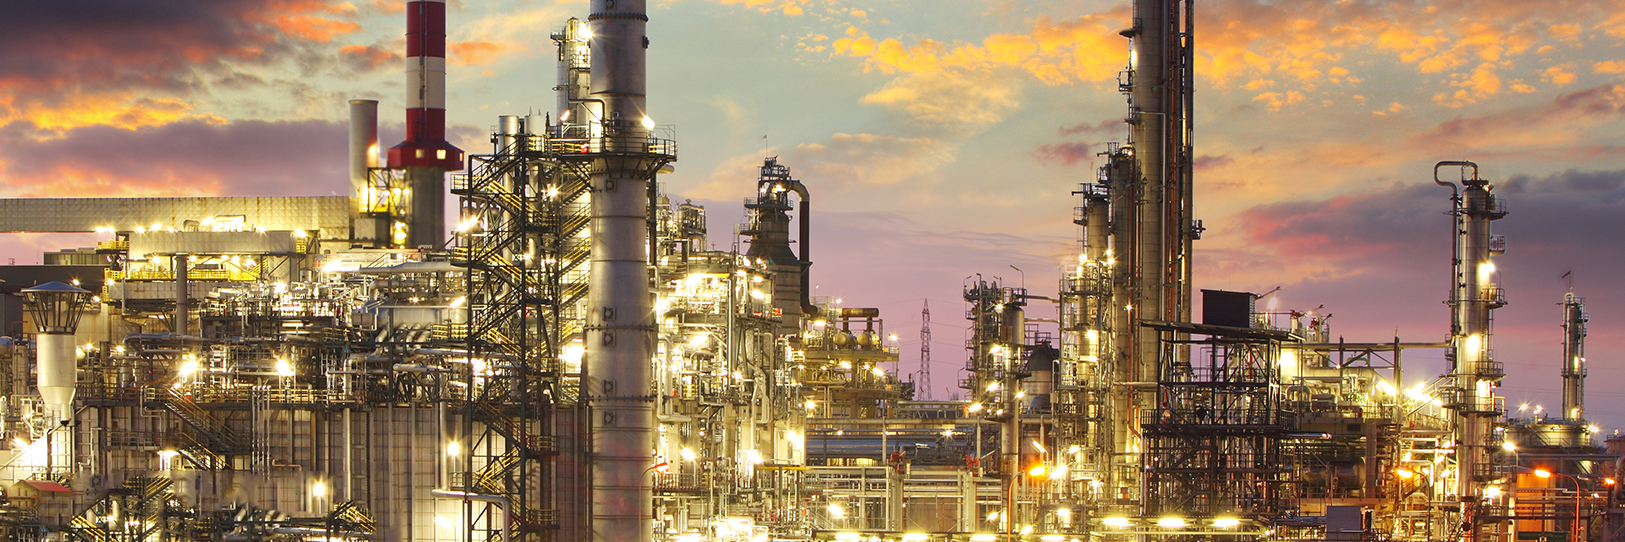 Preparing for Industrial Cyberattacks: Does your Industry Have a Plan?